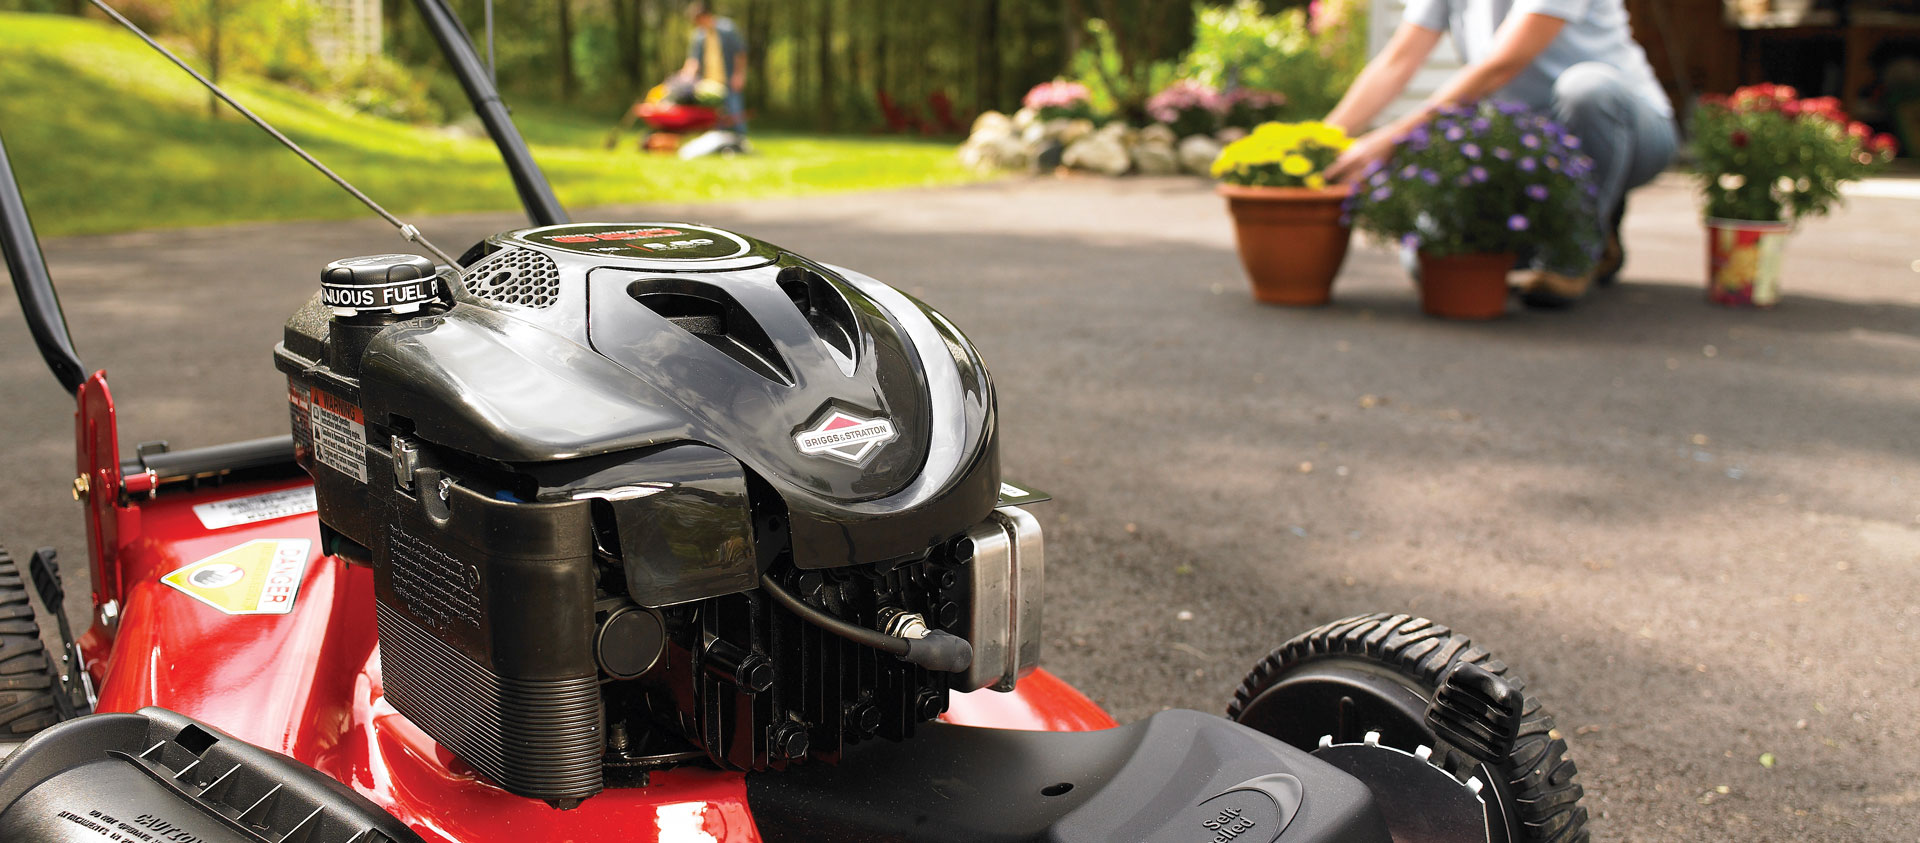 Briggs and Stratton Products